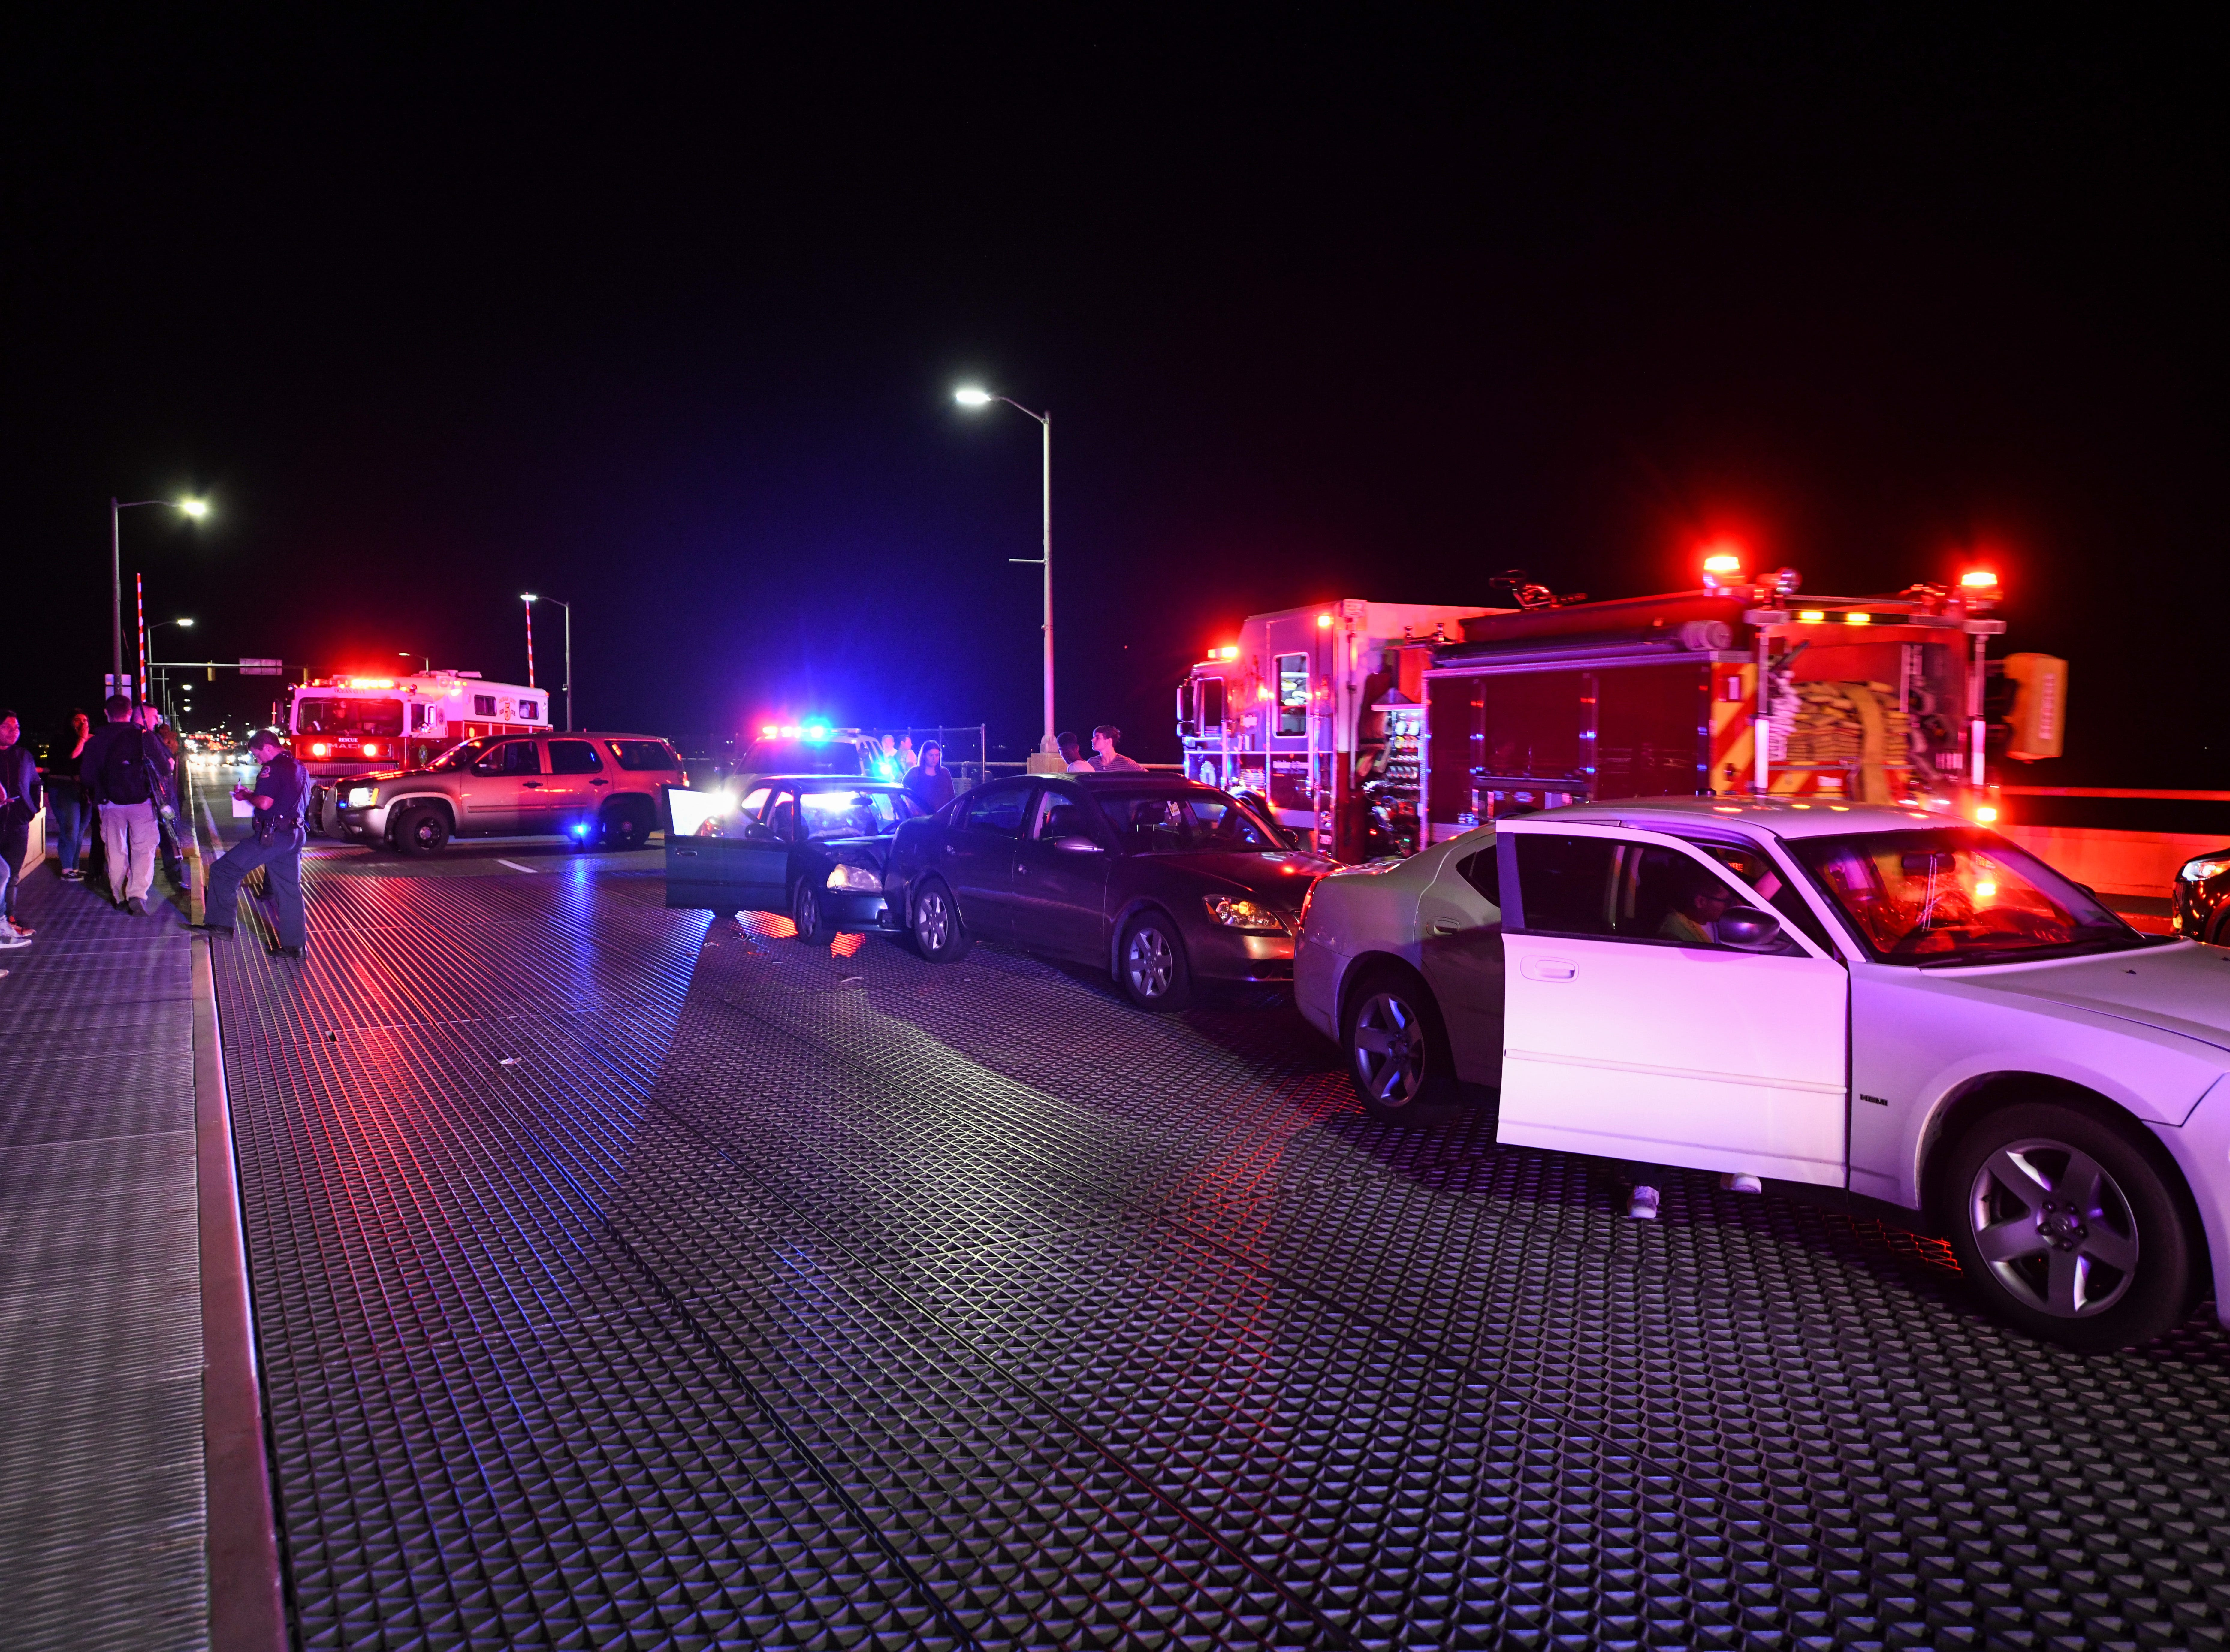 A crash caused injuries and a traffic back-up on the Route 50 bridge into Ocean City on Friday, Sept 28, 2018. Popular car show H2Oi  was traditionally held nearby and though it has now moved to Atlantic City attendees continue to flock to Ocean City.